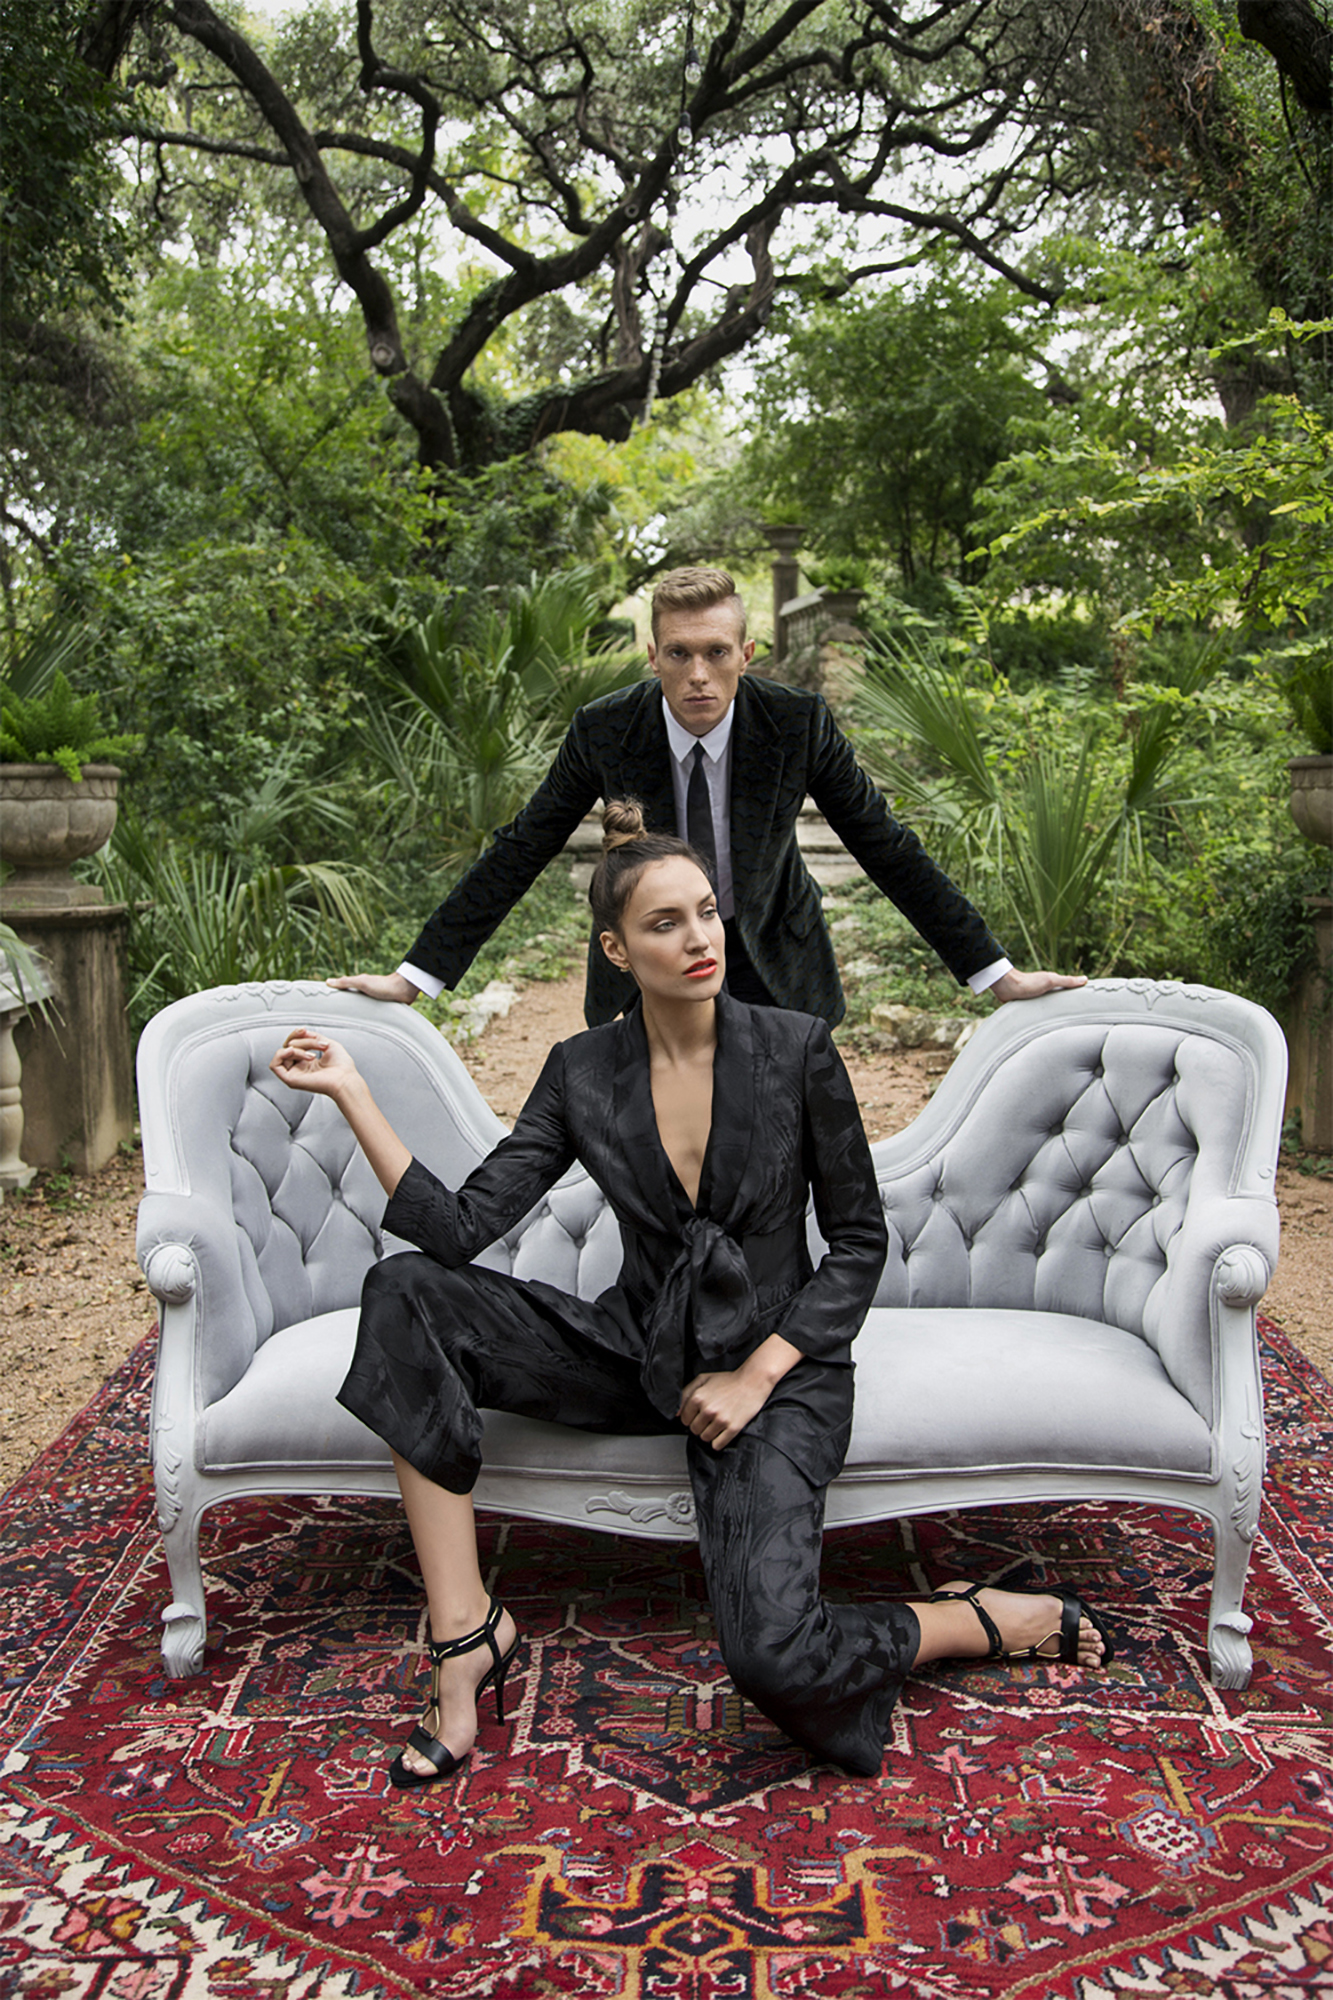 Women's black jumpsuit and men's black suit on sofa in the woods on a rug